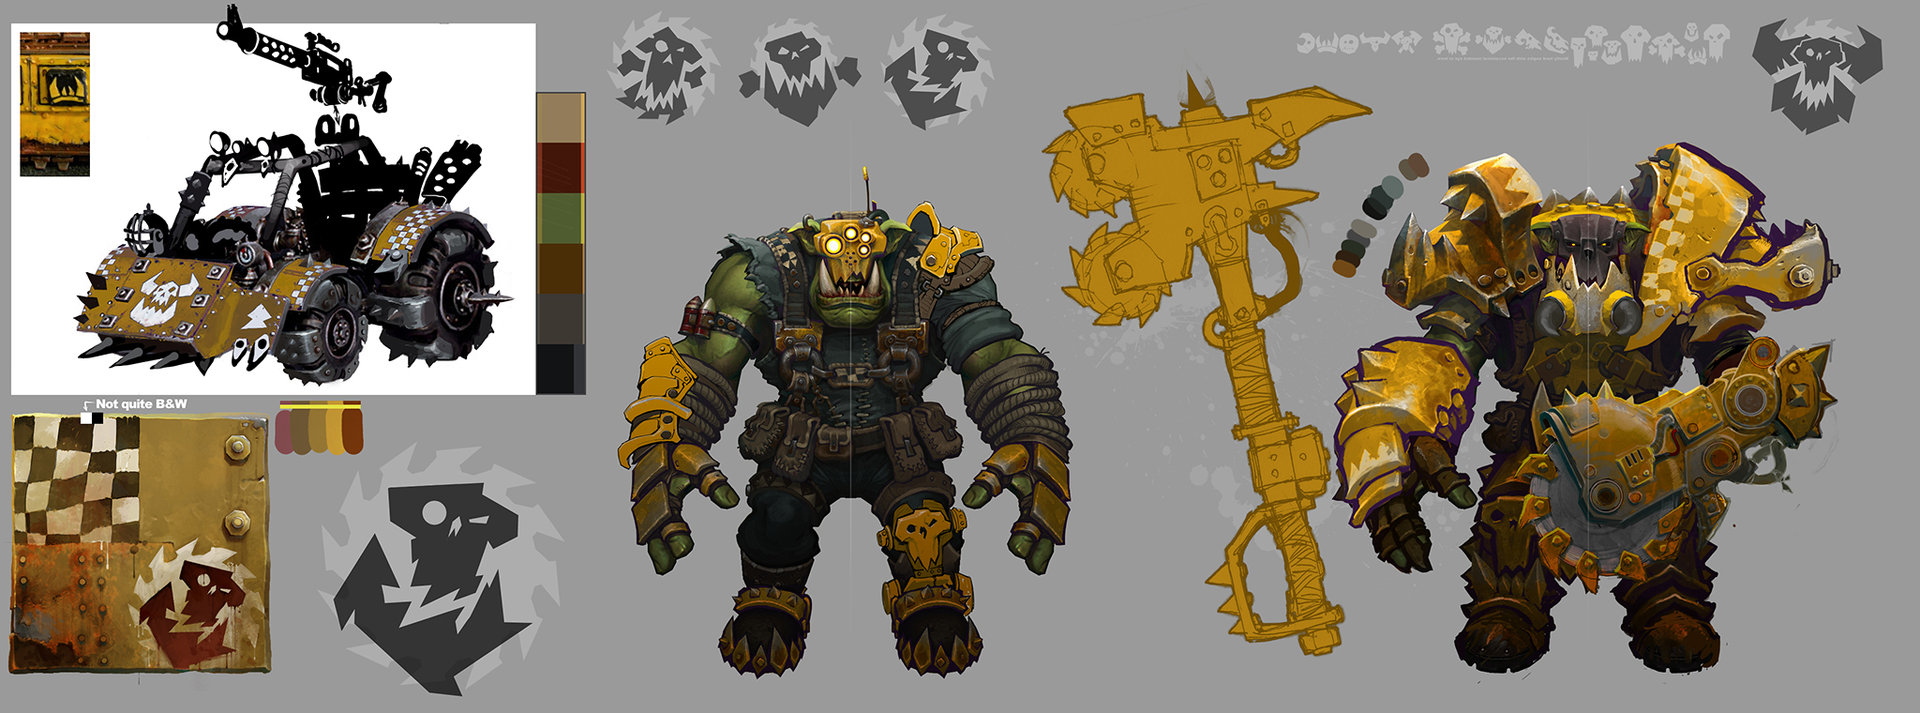 Ted beargeon ork rip jaw clan exploration